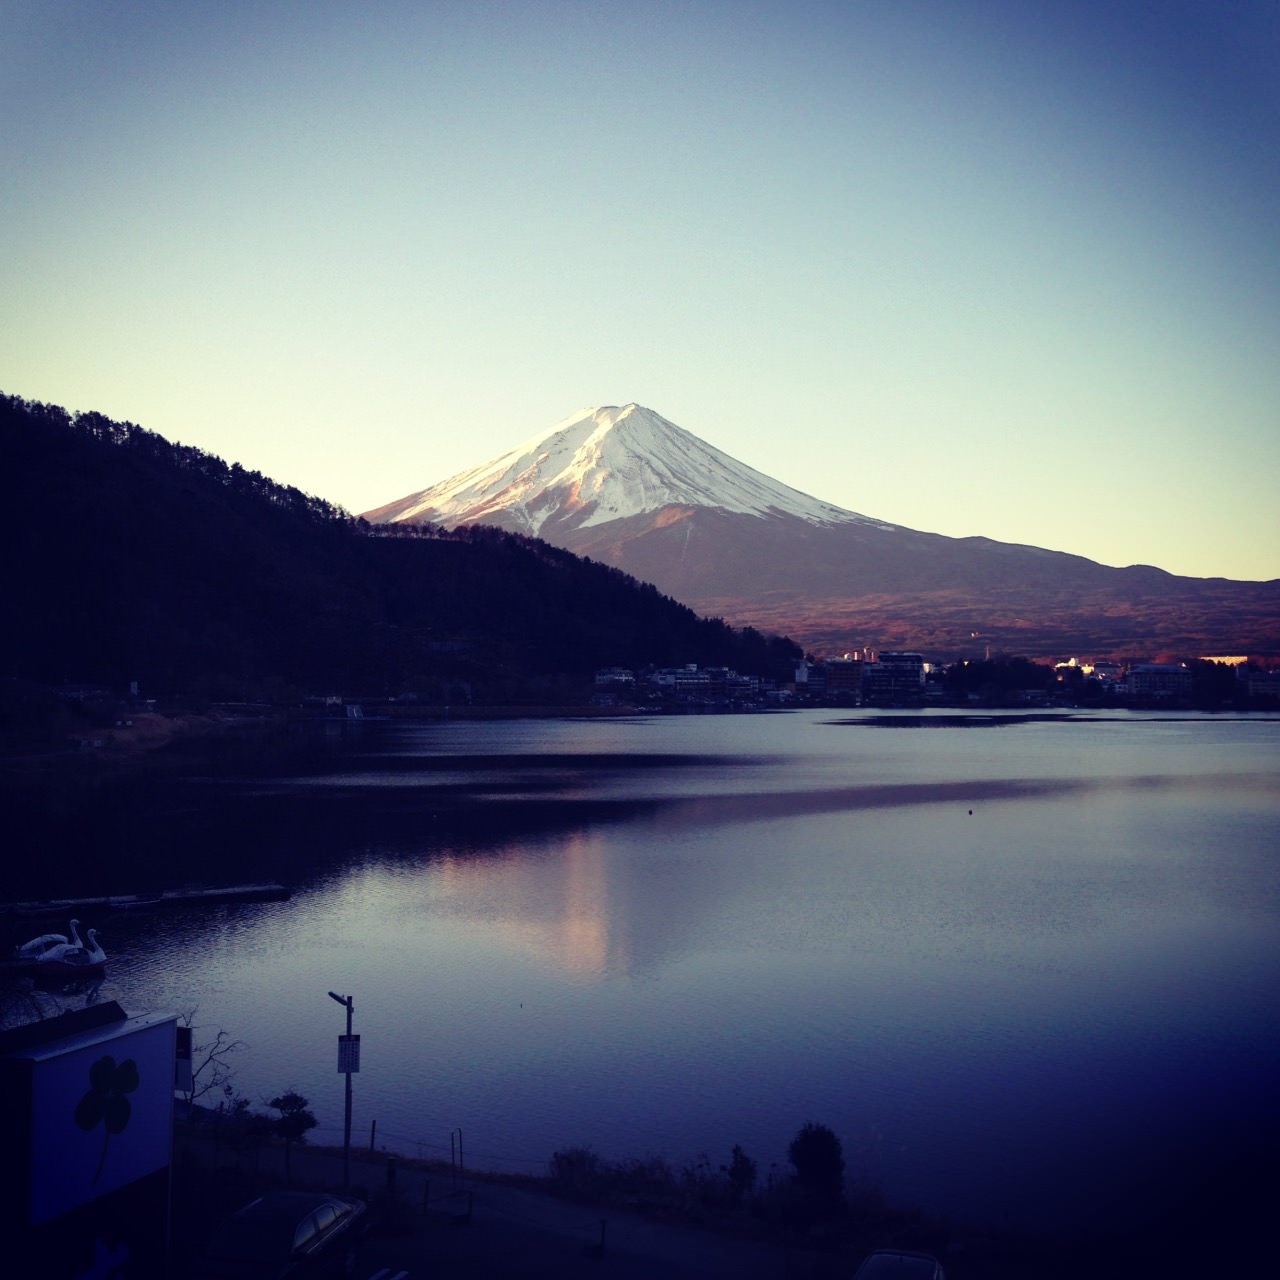 Taken this photo during my road trip at Fuji Five Lakes, the majestic Mt Fuji was truly stunning!